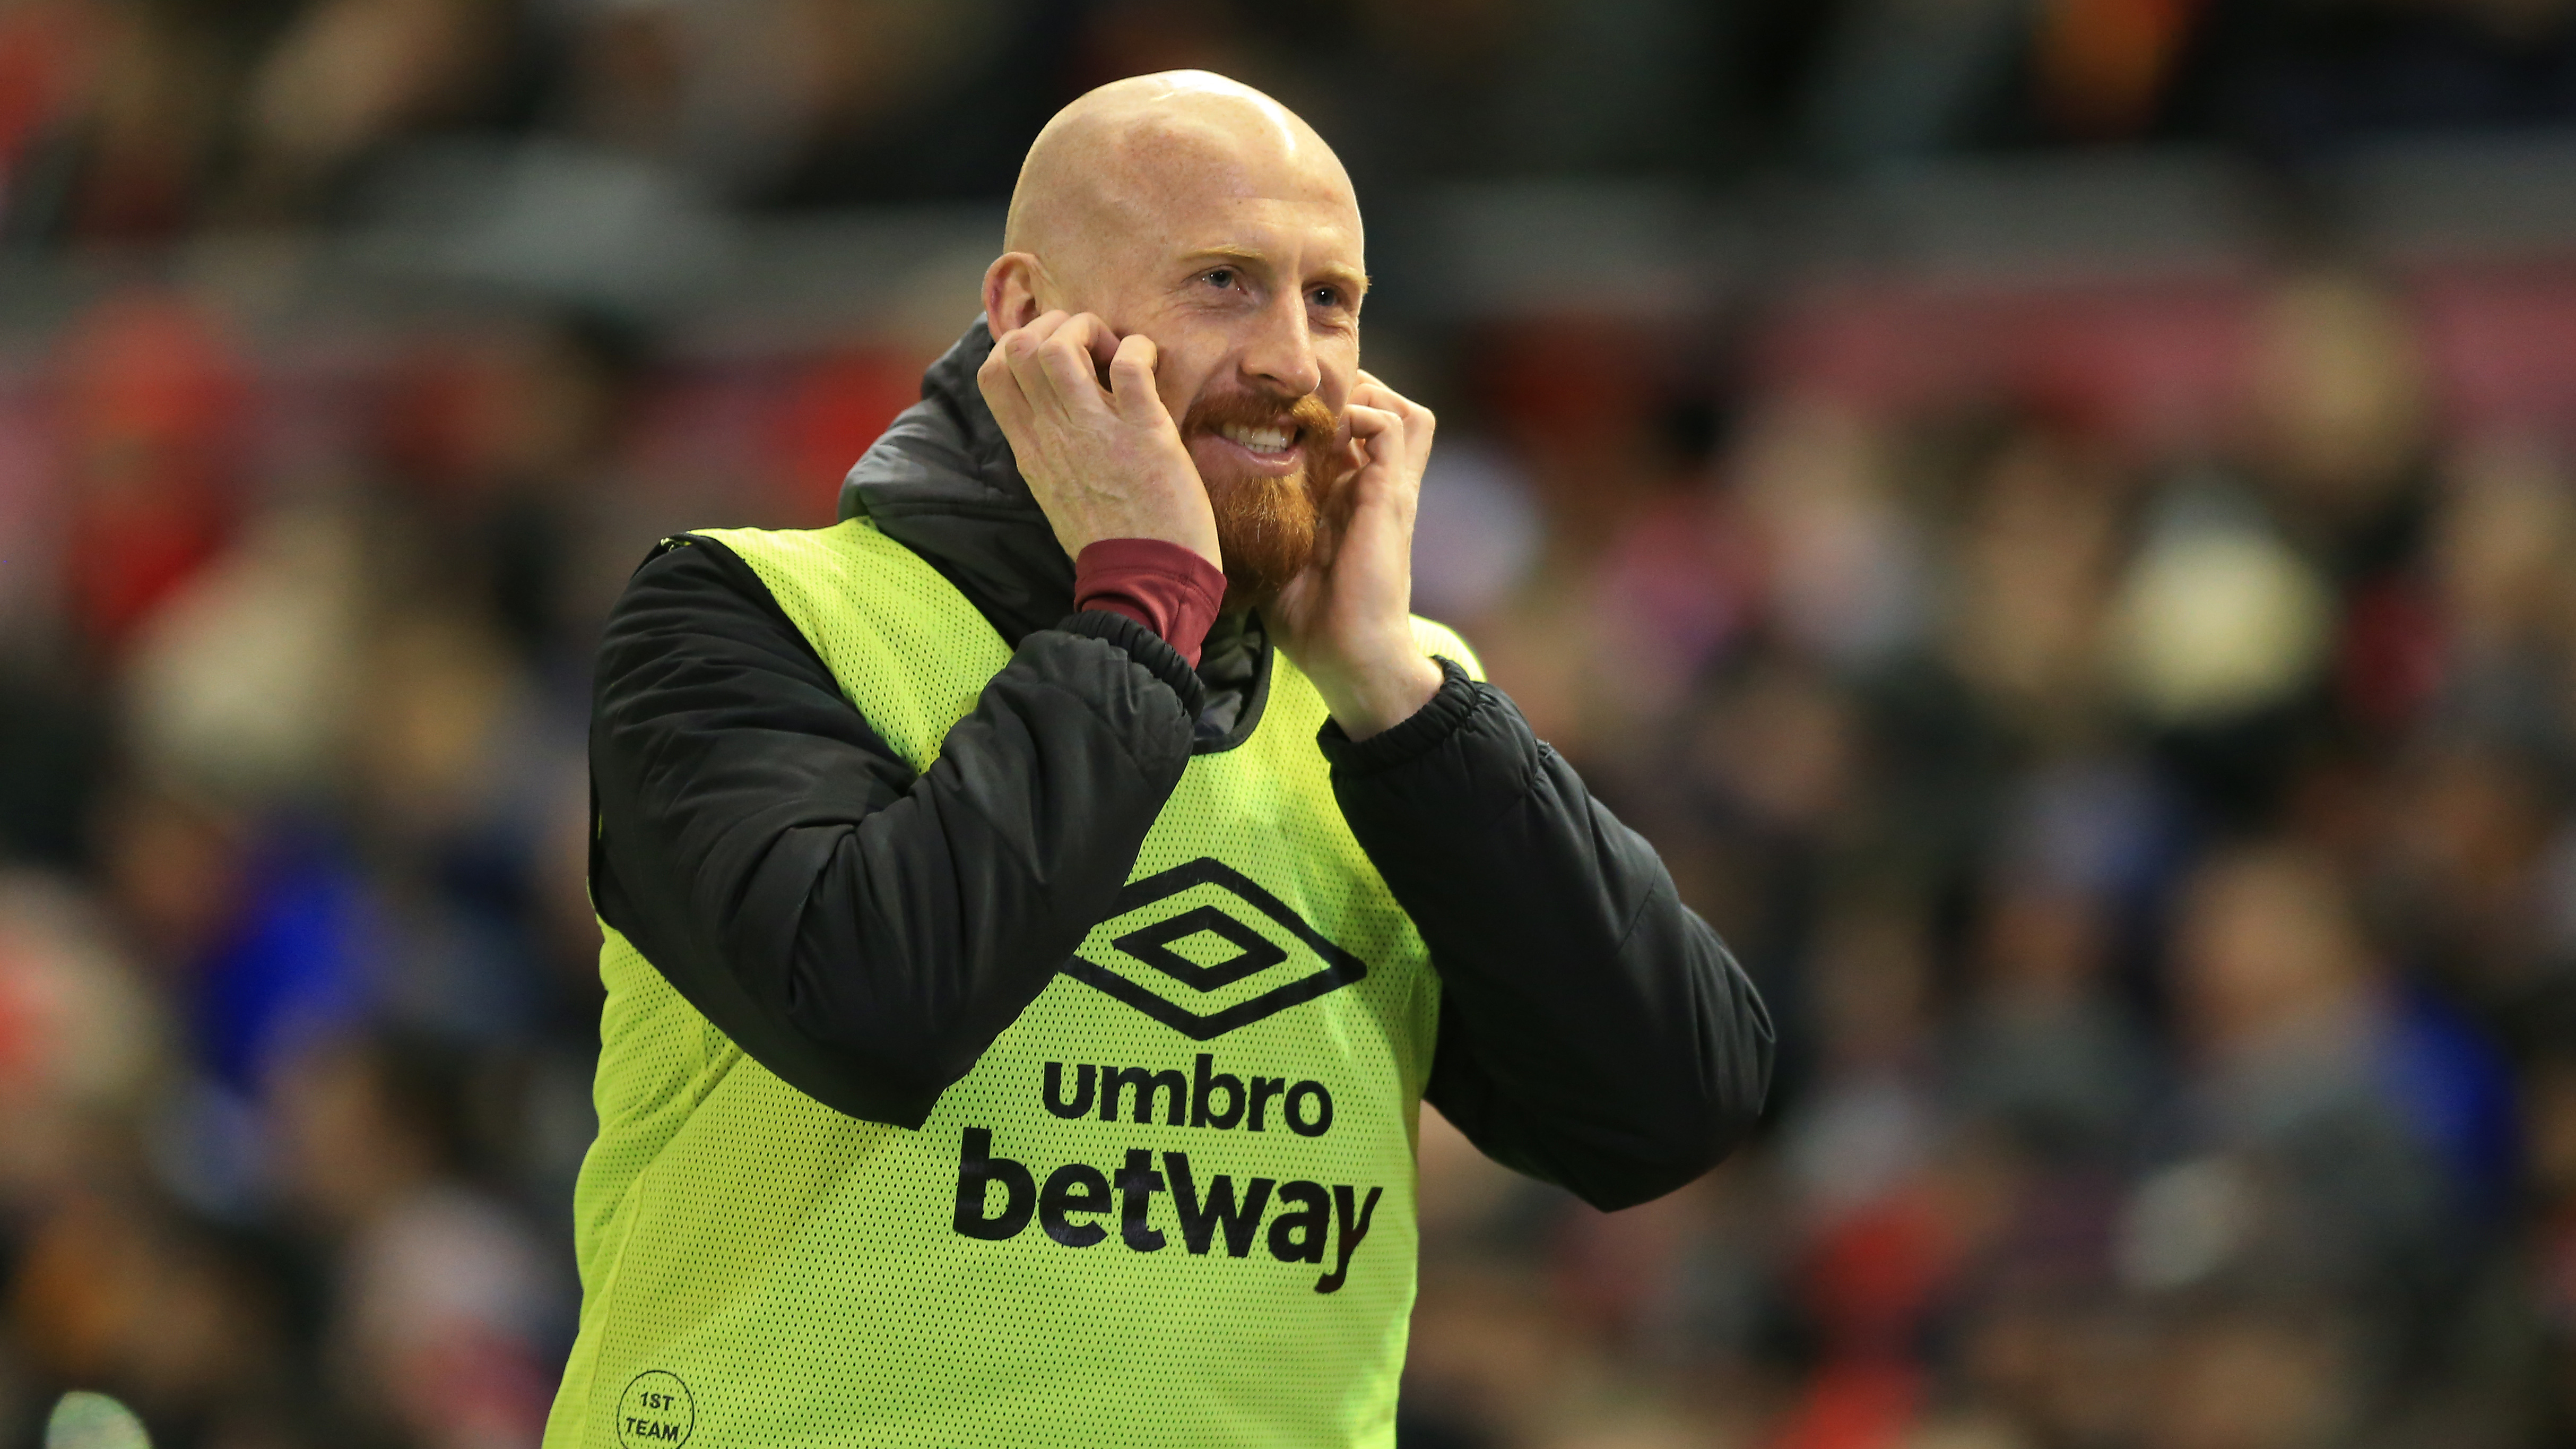 James Collins Rips Up His Aston Villa Contract An Hour After Signing It